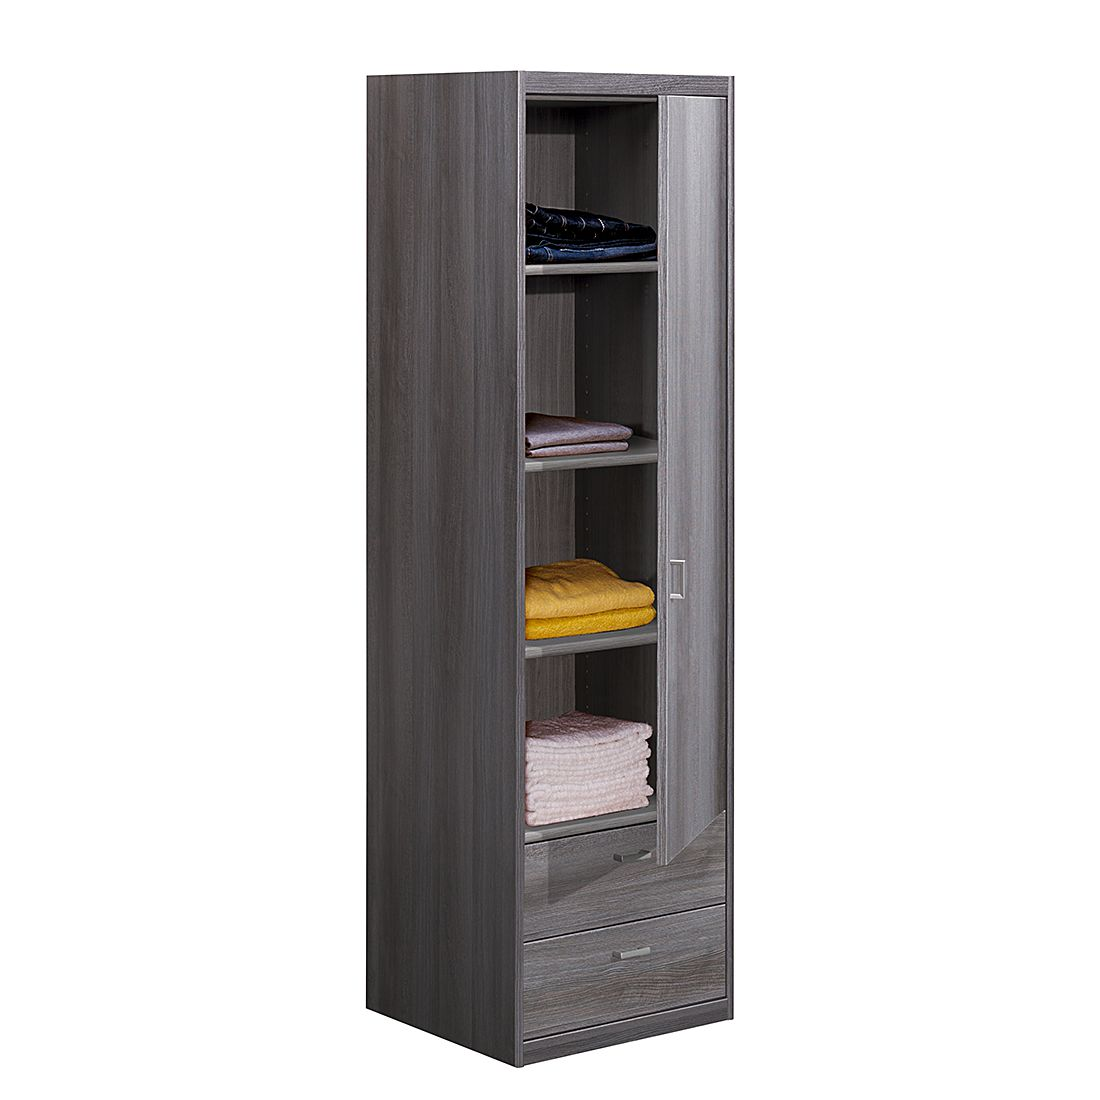 mehrzweckschrank soft plus iii silbereiche dekor. Black Bedroom Furniture Sets. Home Design Ideas